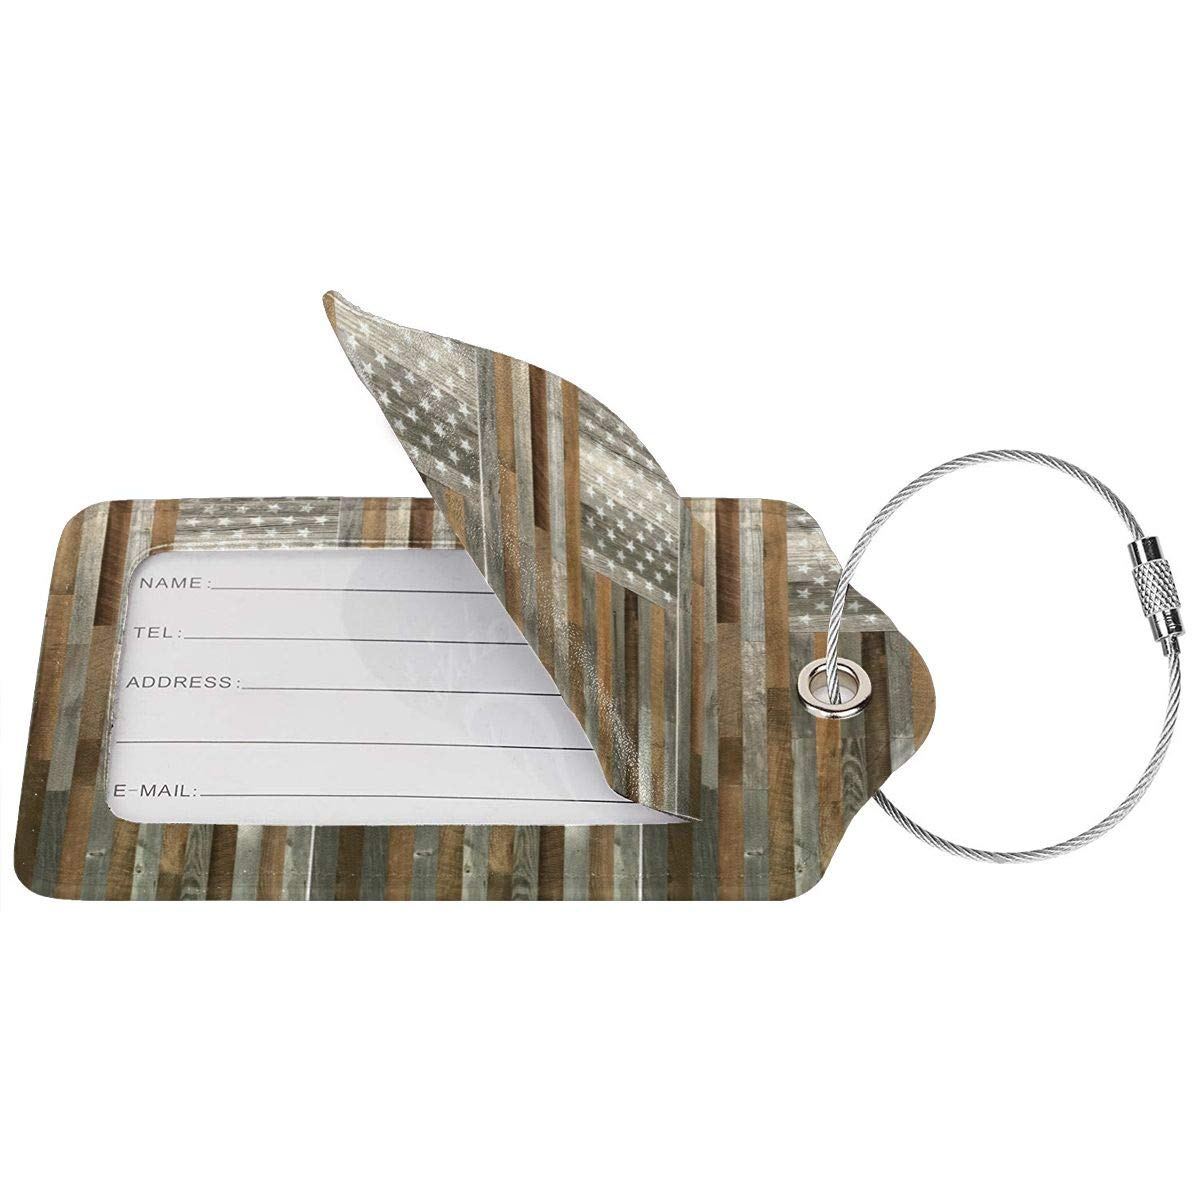 Artiswall American Flag Reclaimed Wood Leather Luggage Tags Personalized Privacy Cover With Adjustable Strap